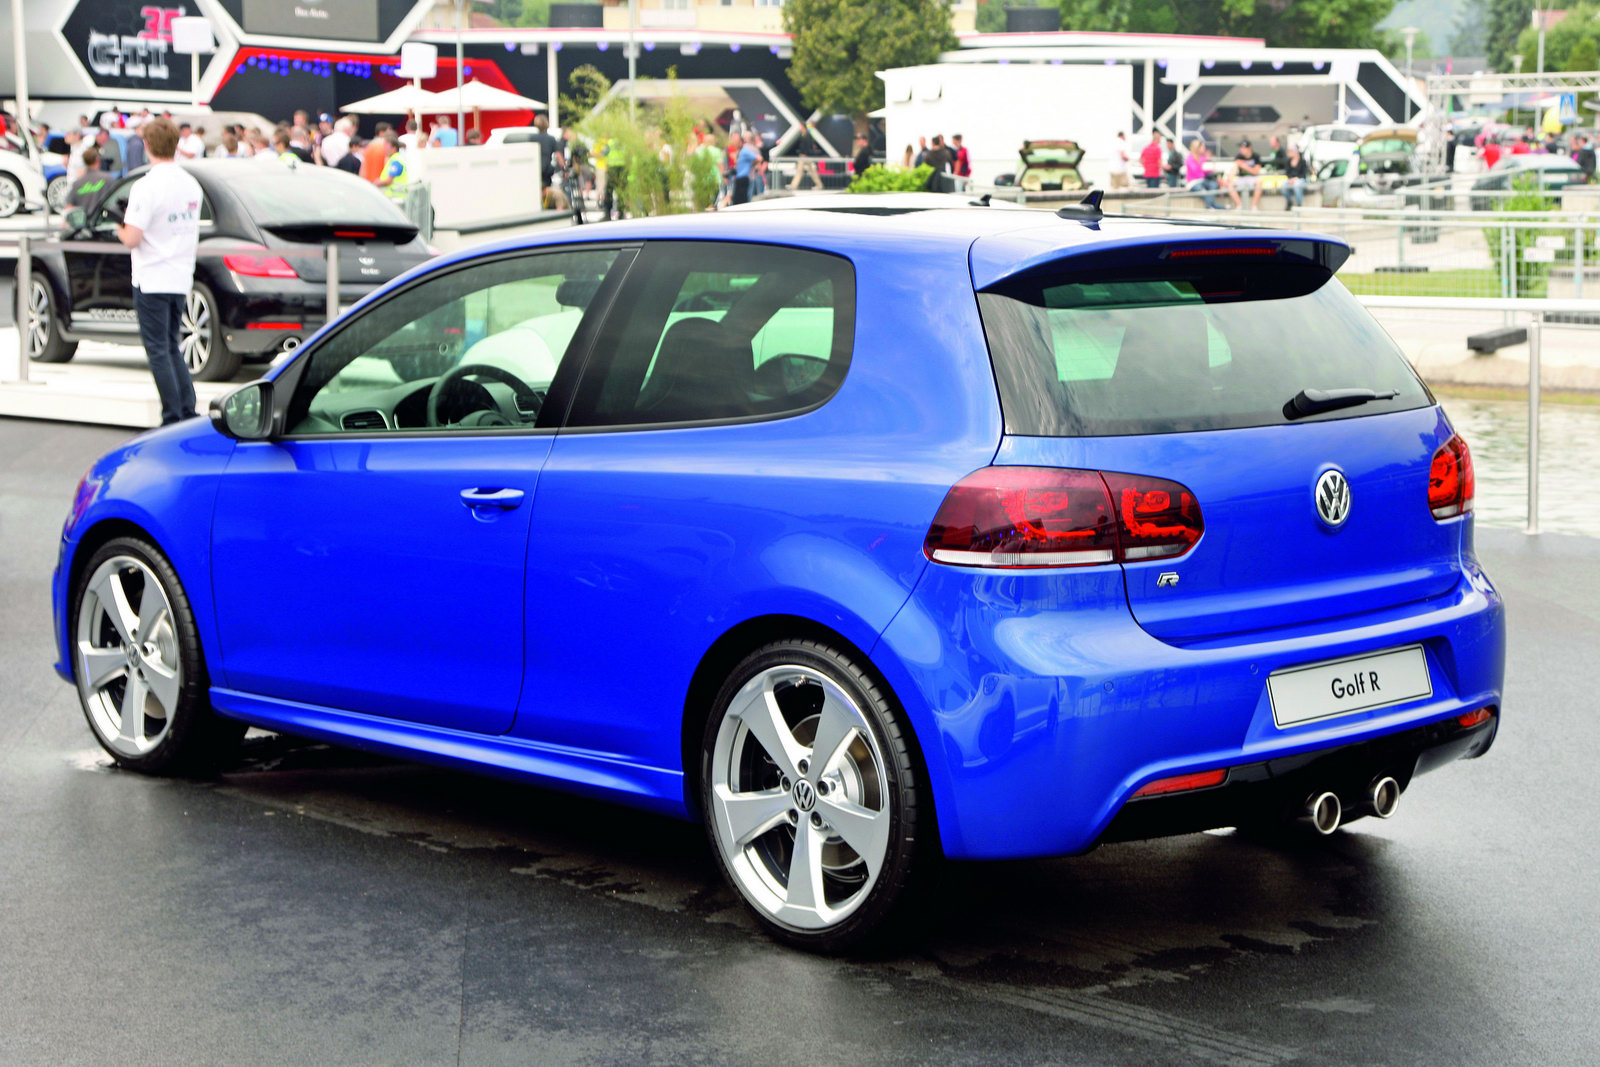 Two Volkswagen Golf R Color Concepts Arrive In Worthersee